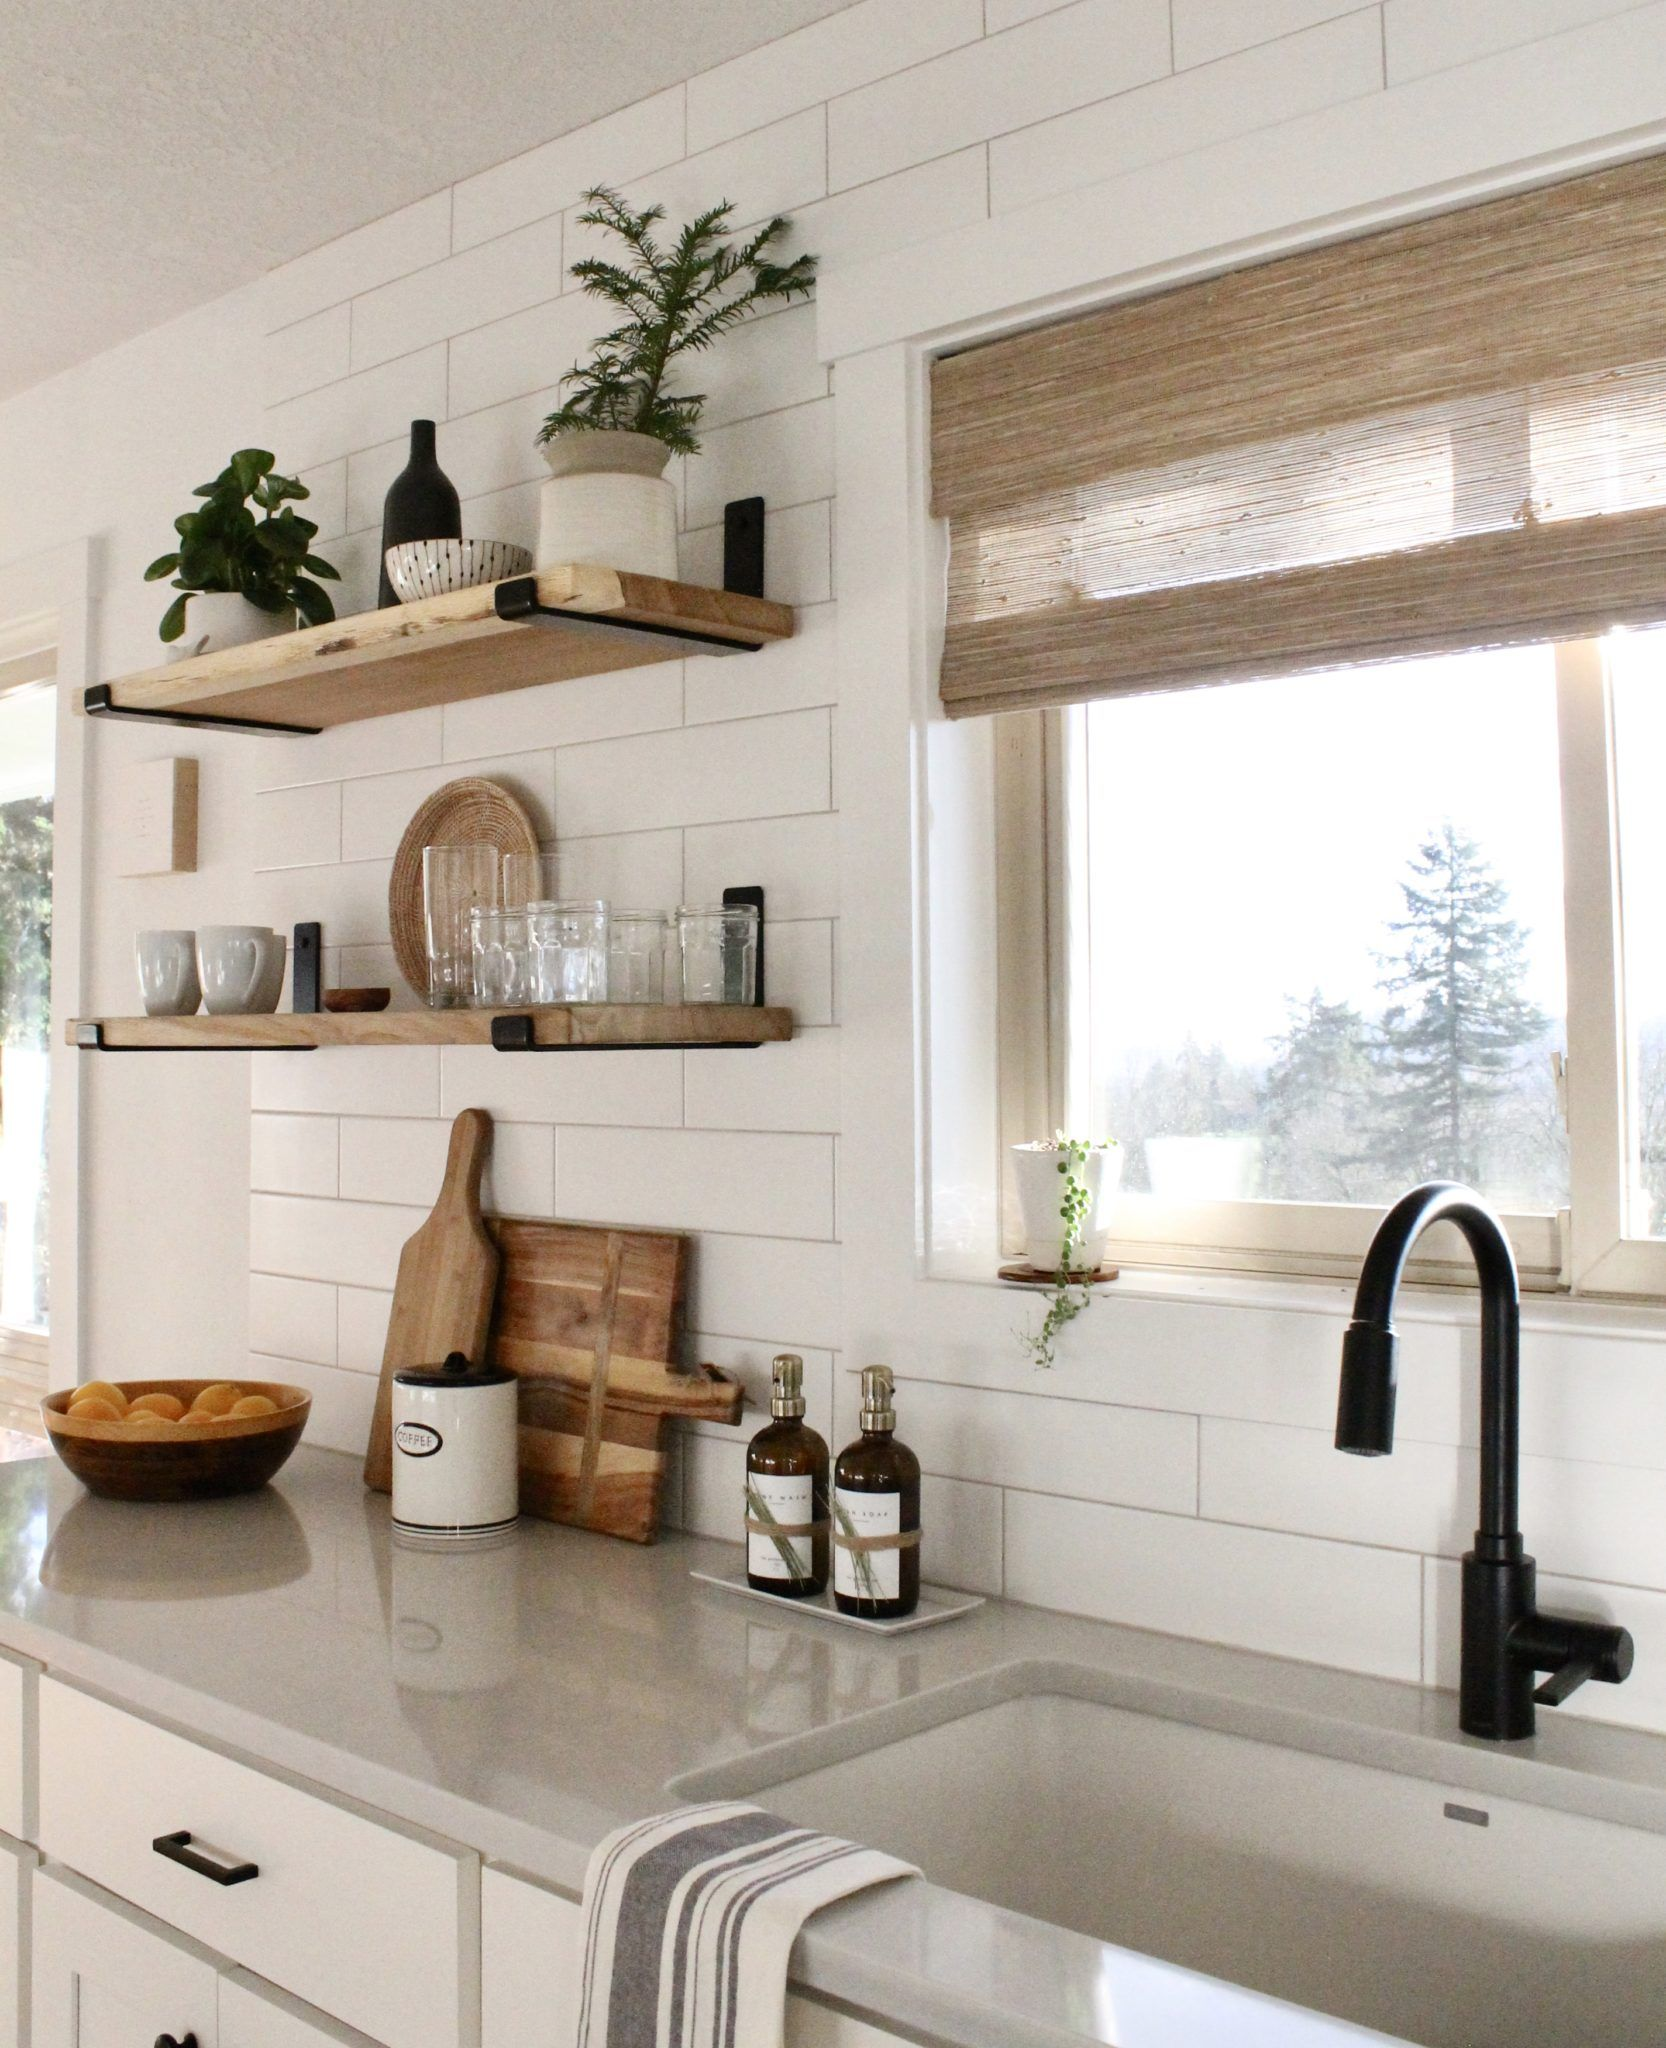 Bright Kitchen Remodel Before and After